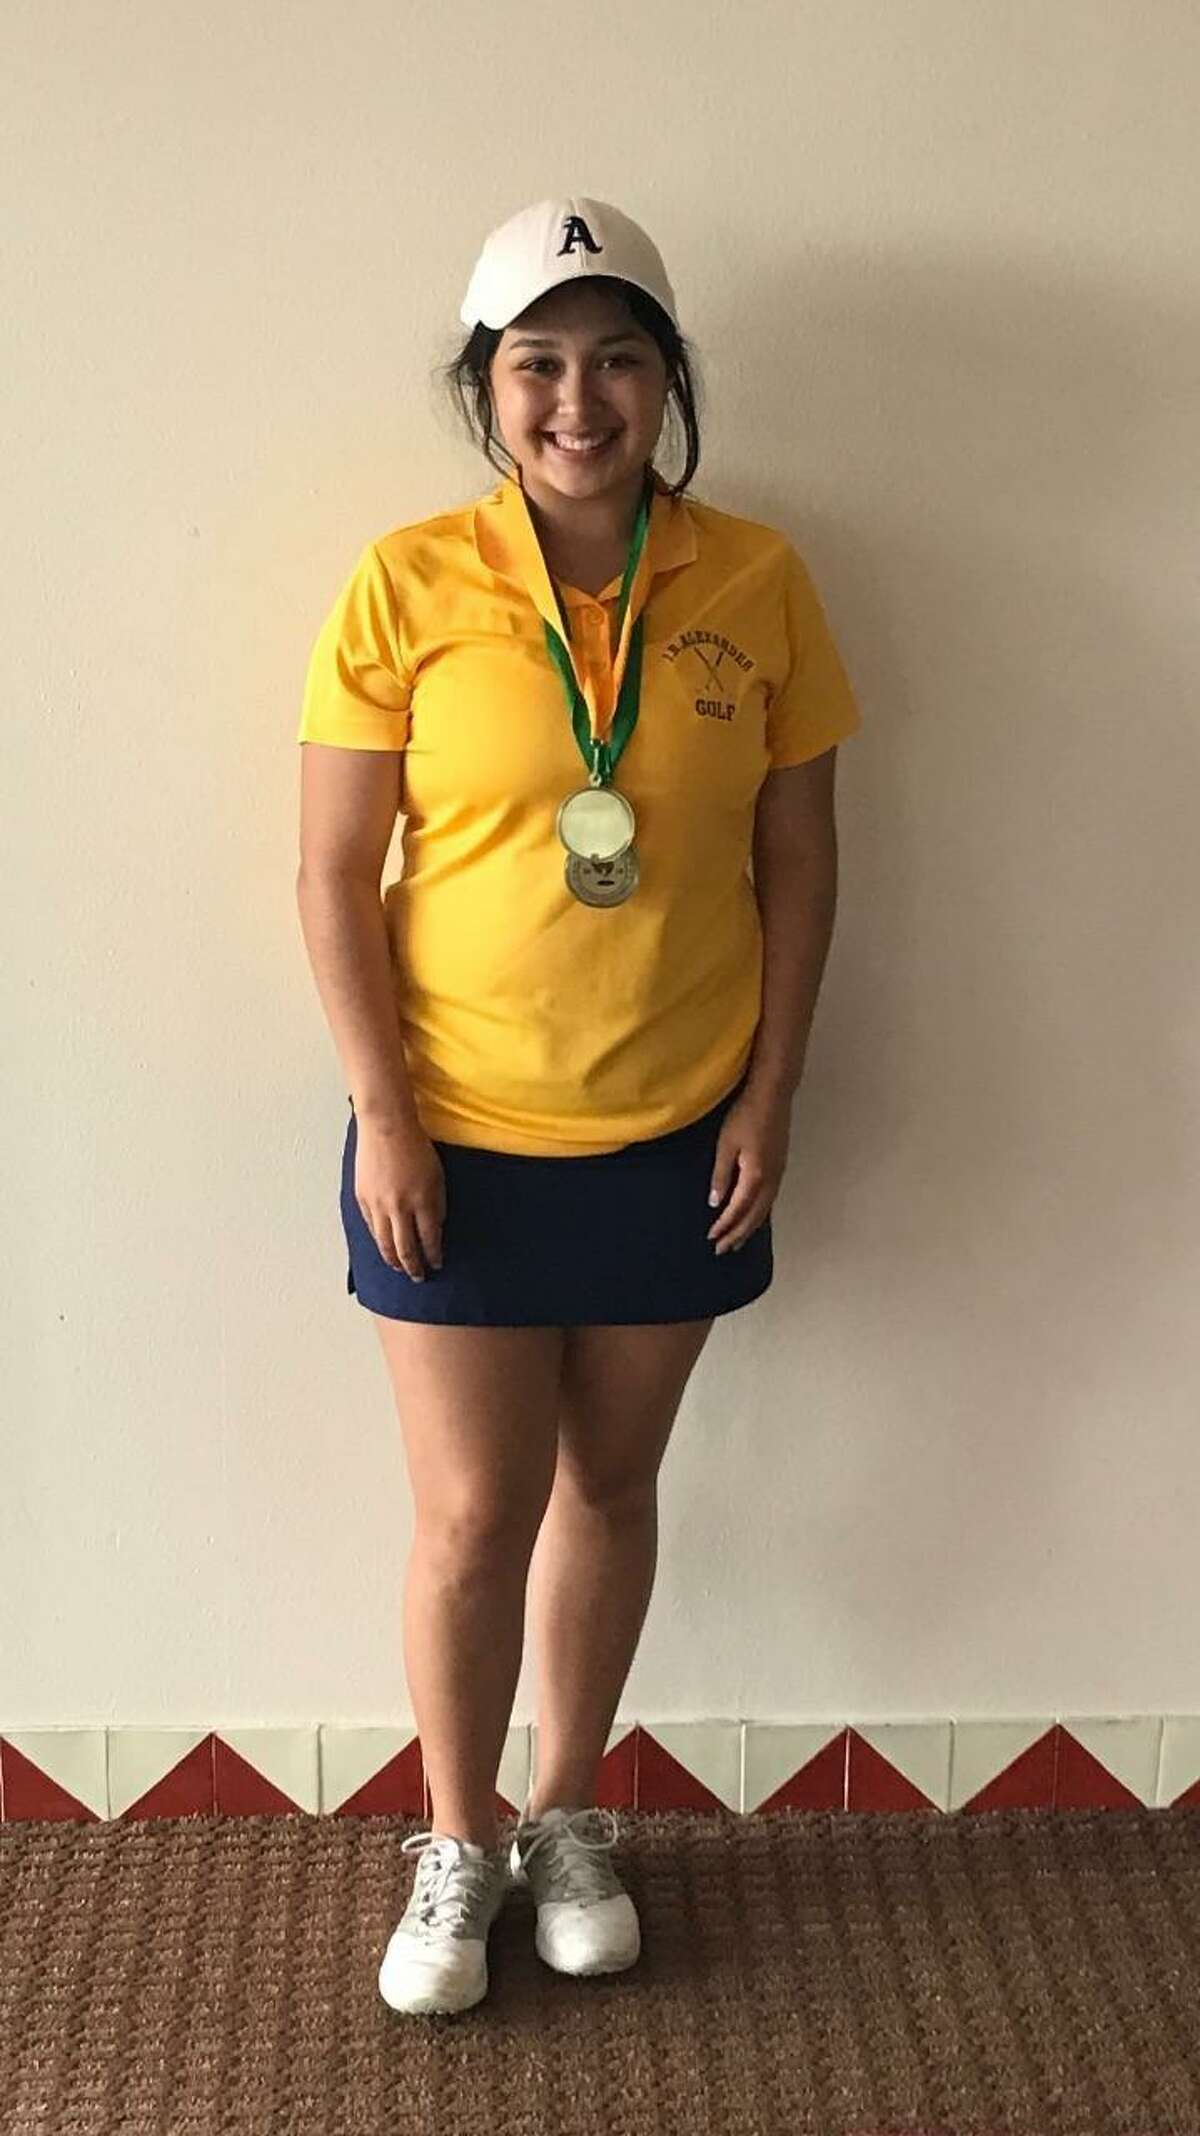 Monica Rangel shot an 83 Tuesday to finish second place at the Nixon Golf Invitational at the Max A. Mandel Golf Course.